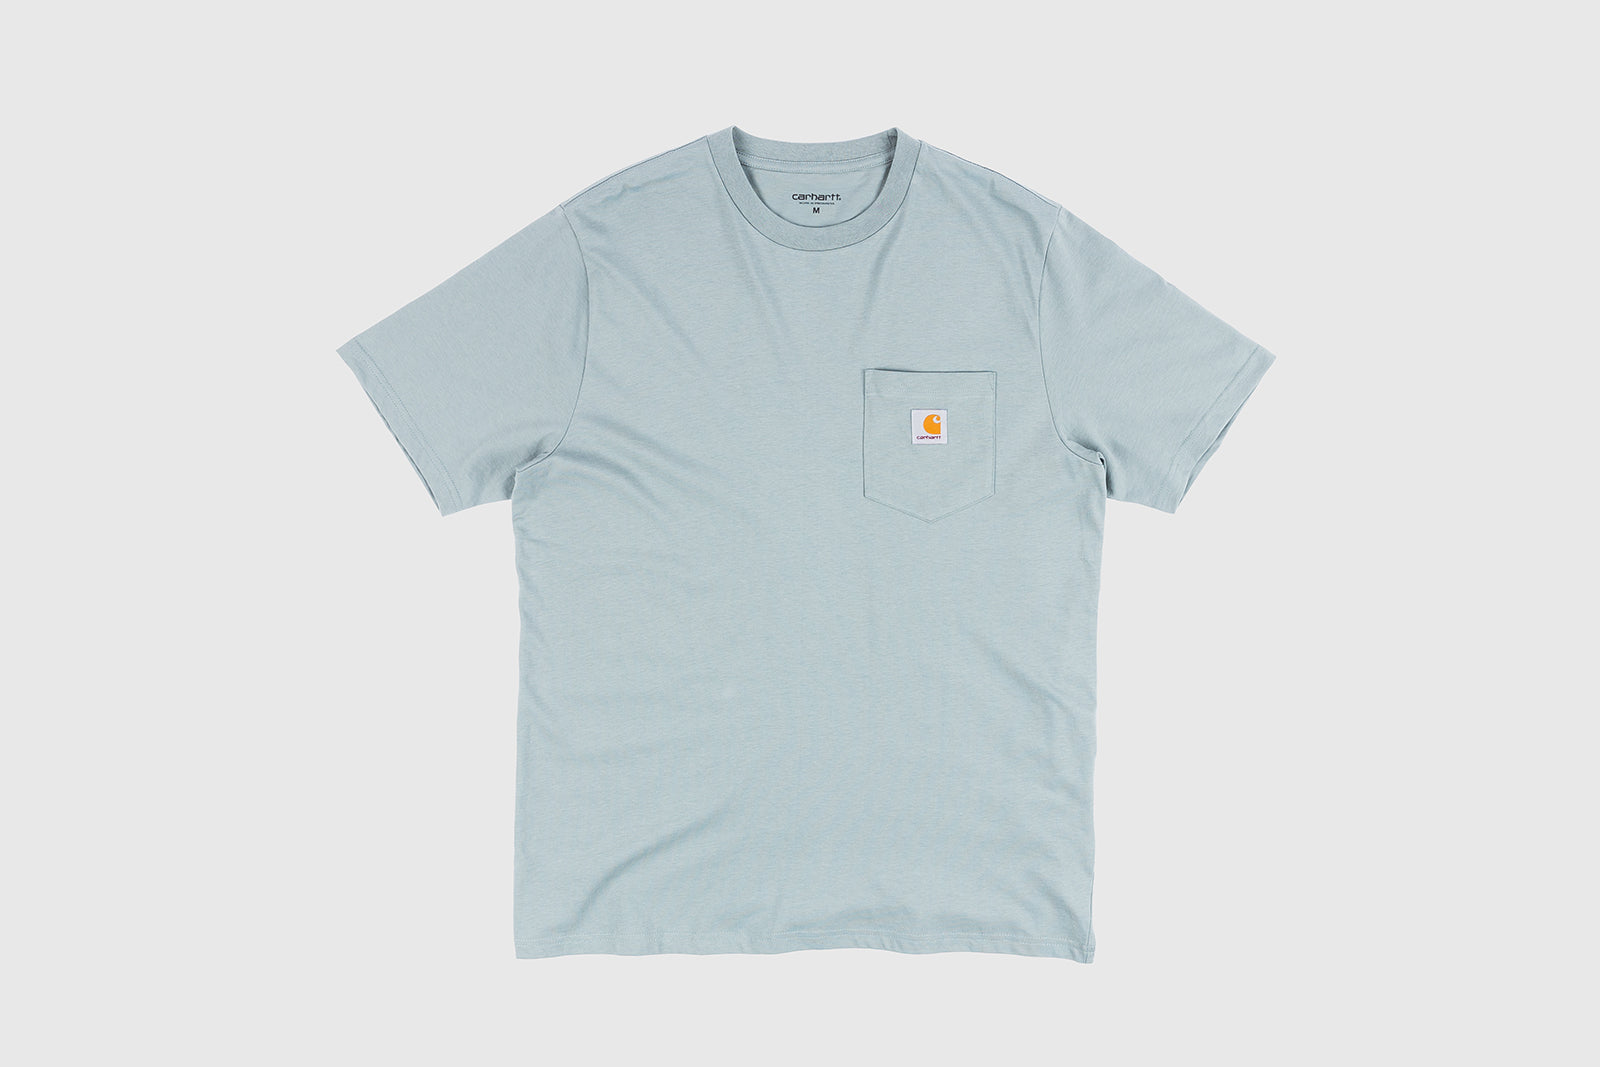 CARHARTT WIP S/S POCKET T-SHIRT